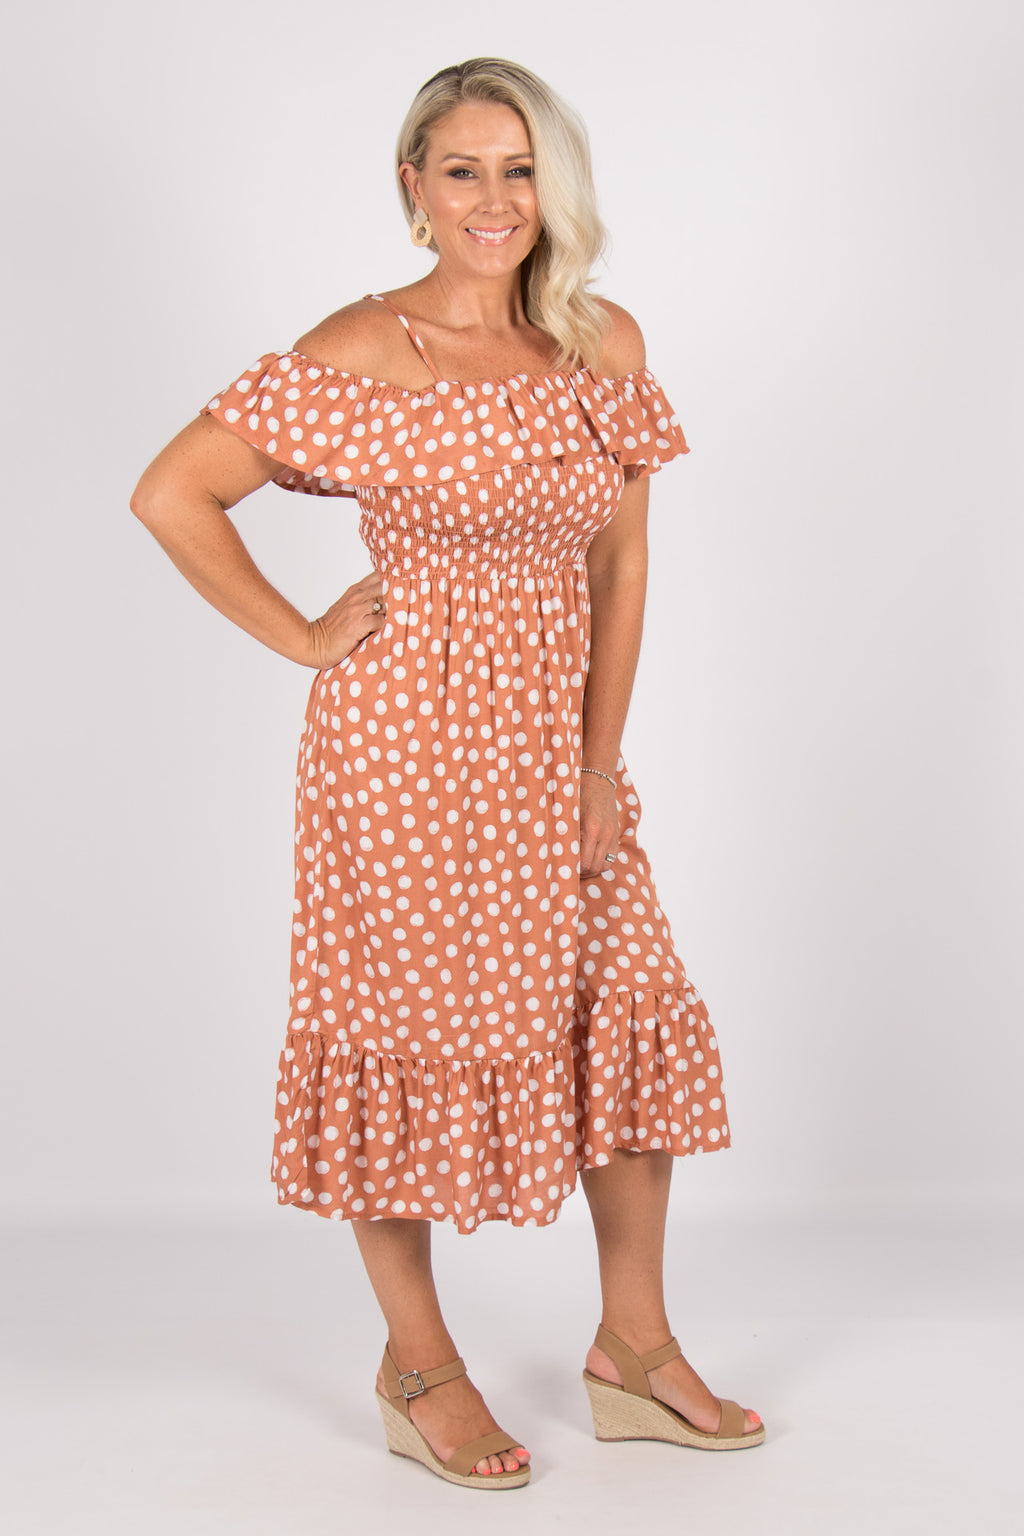 Almada Dress in Soft Terracotta